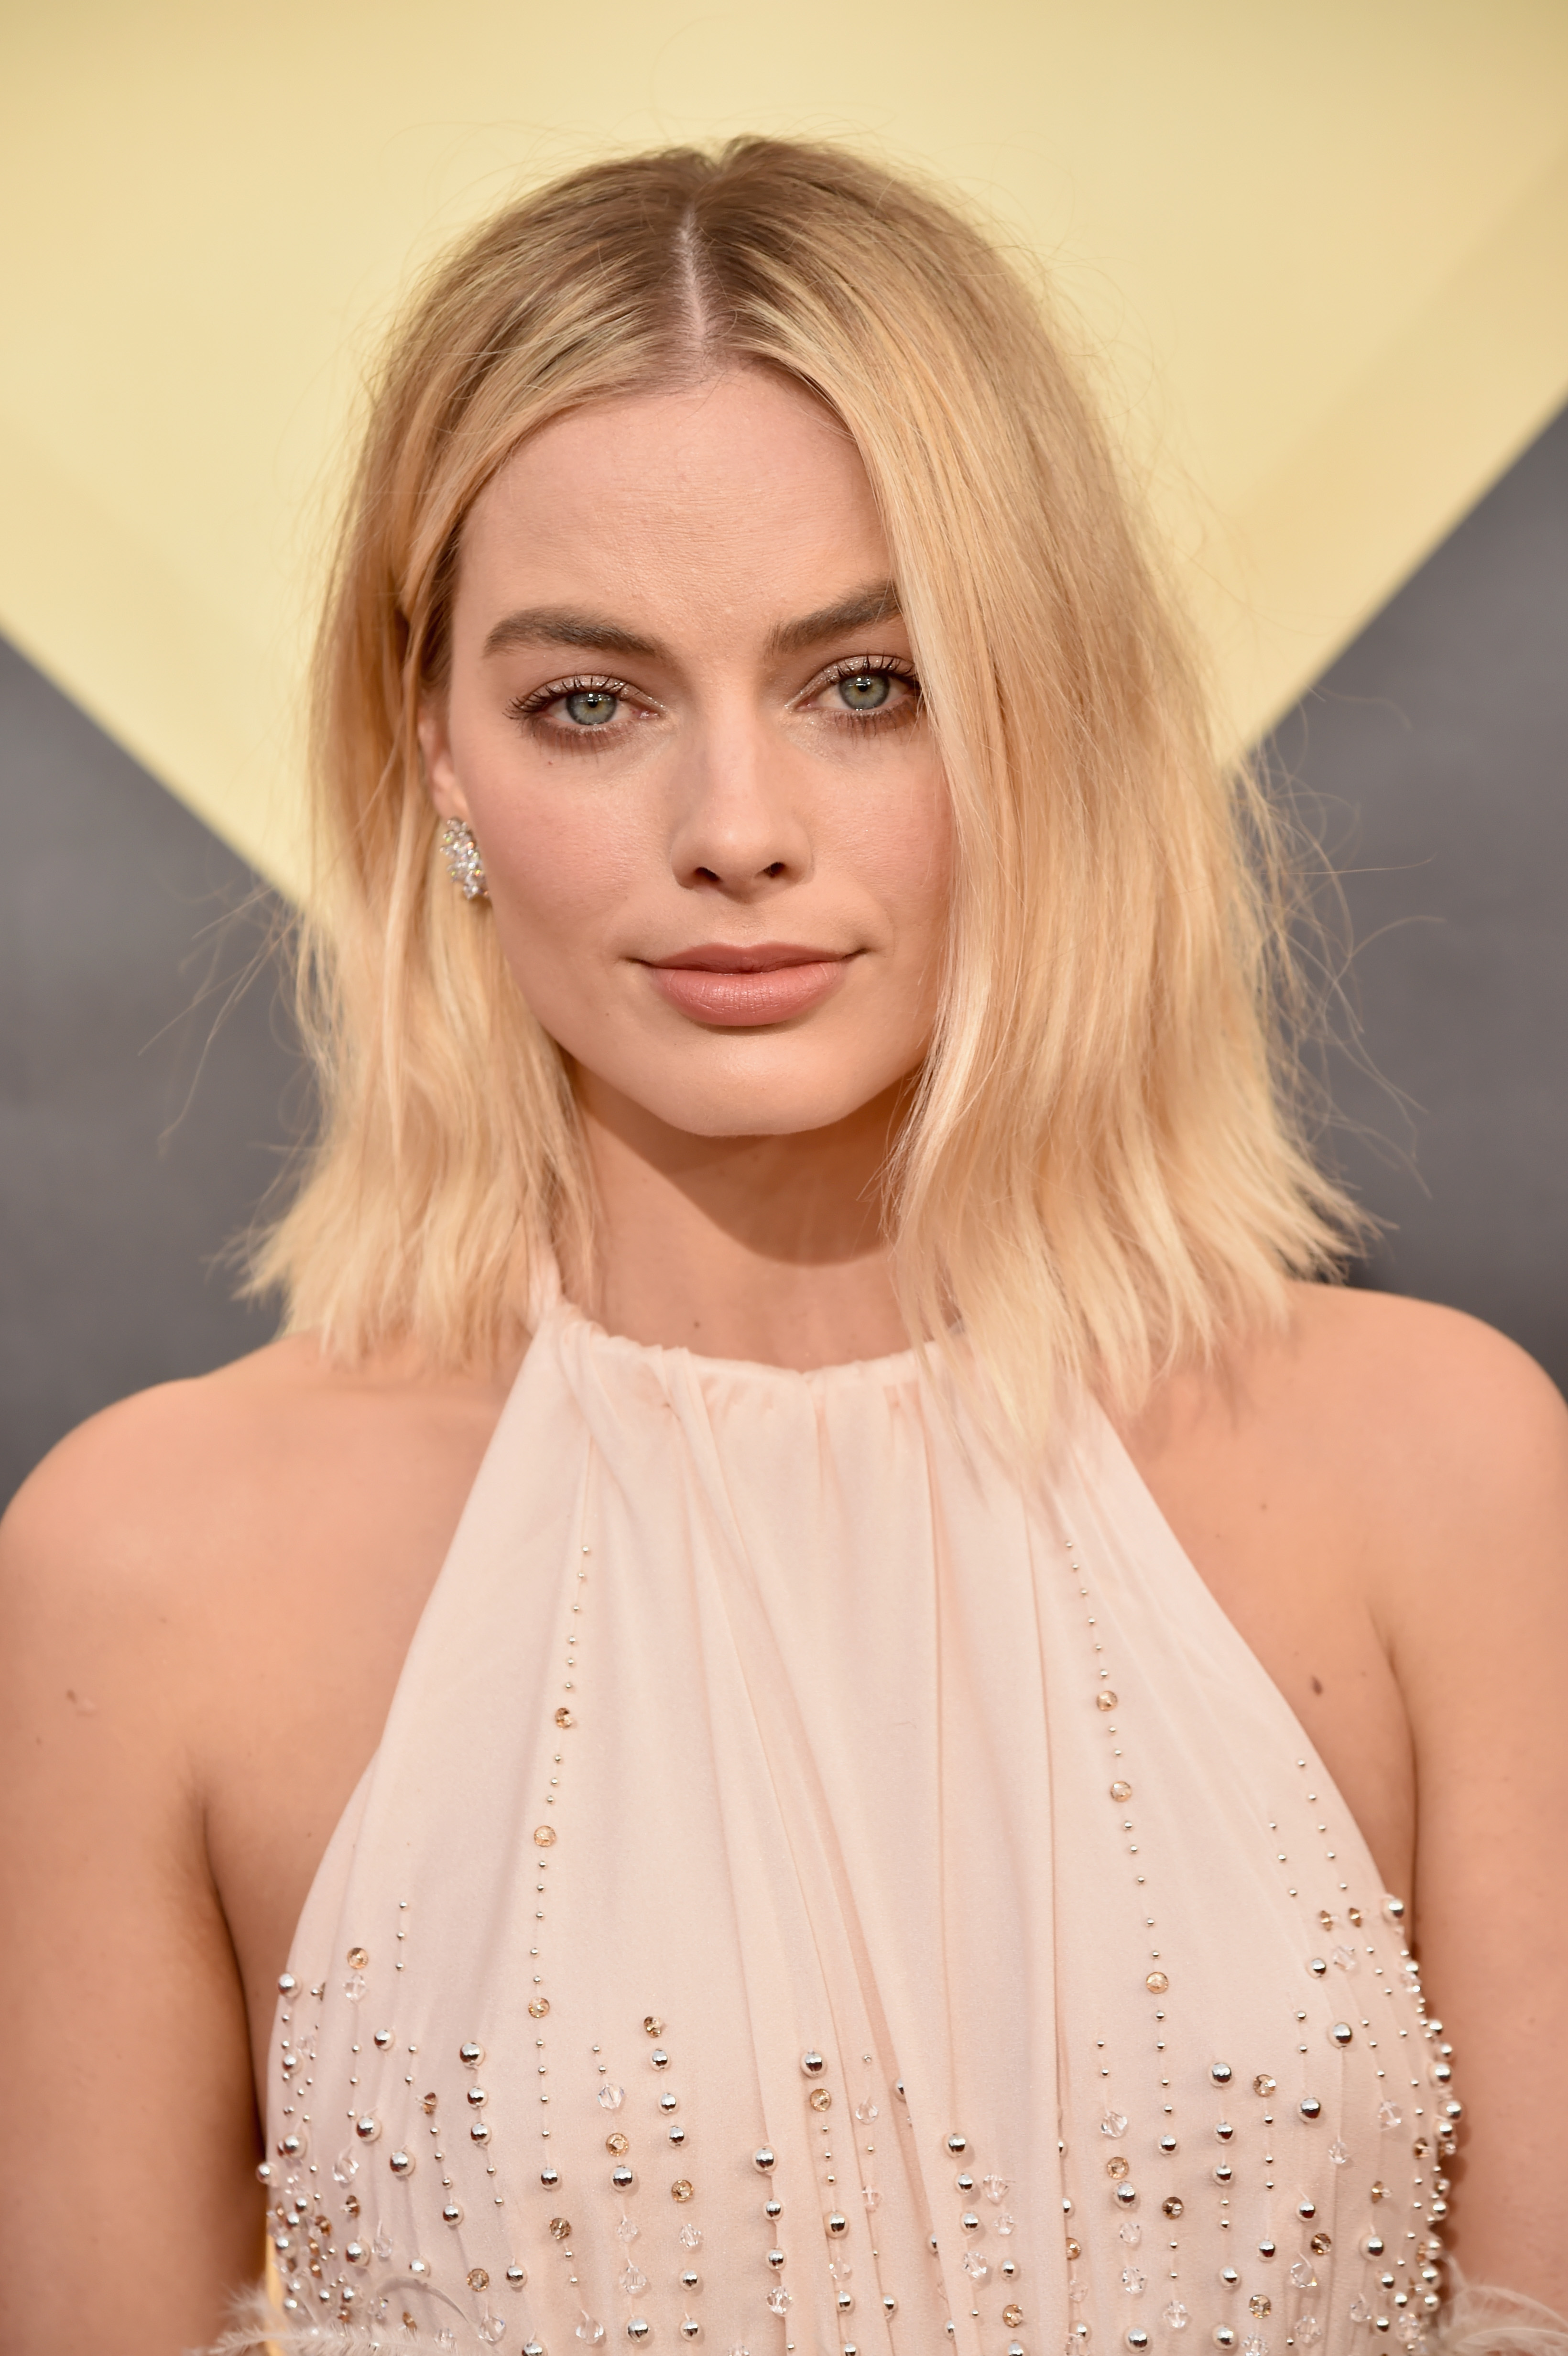 "<p><em>I Tonya</em> star Margot Robbie made a show-stepping entrance on the red carpet at this year's <a href=""https://style.nine.com.au/2018/01/22/09/12/sag-awards-2018-red-carpet-fashion"" target=""_blank"">Screen Actors Guild Awards</a> in a delicate, blush-coloured Miu Miu gown, but it was her luminous makeup and 'bed head' hair that made the biggest impression.</p> <p>The Australian actress went for a messy and undone 'do that added a punky edge to her look and was the perfect complement to match her soft nude lip and thick brows.</p> <p>This year's SAG Awards not only played host to a sartorially diverse red carpet where black was far from the only colour on show, but also an array of bold and elegant beauty looks.</p> <p>Click through to see all our favourite beauty looks from the 2018 SAG Awards.</p>"